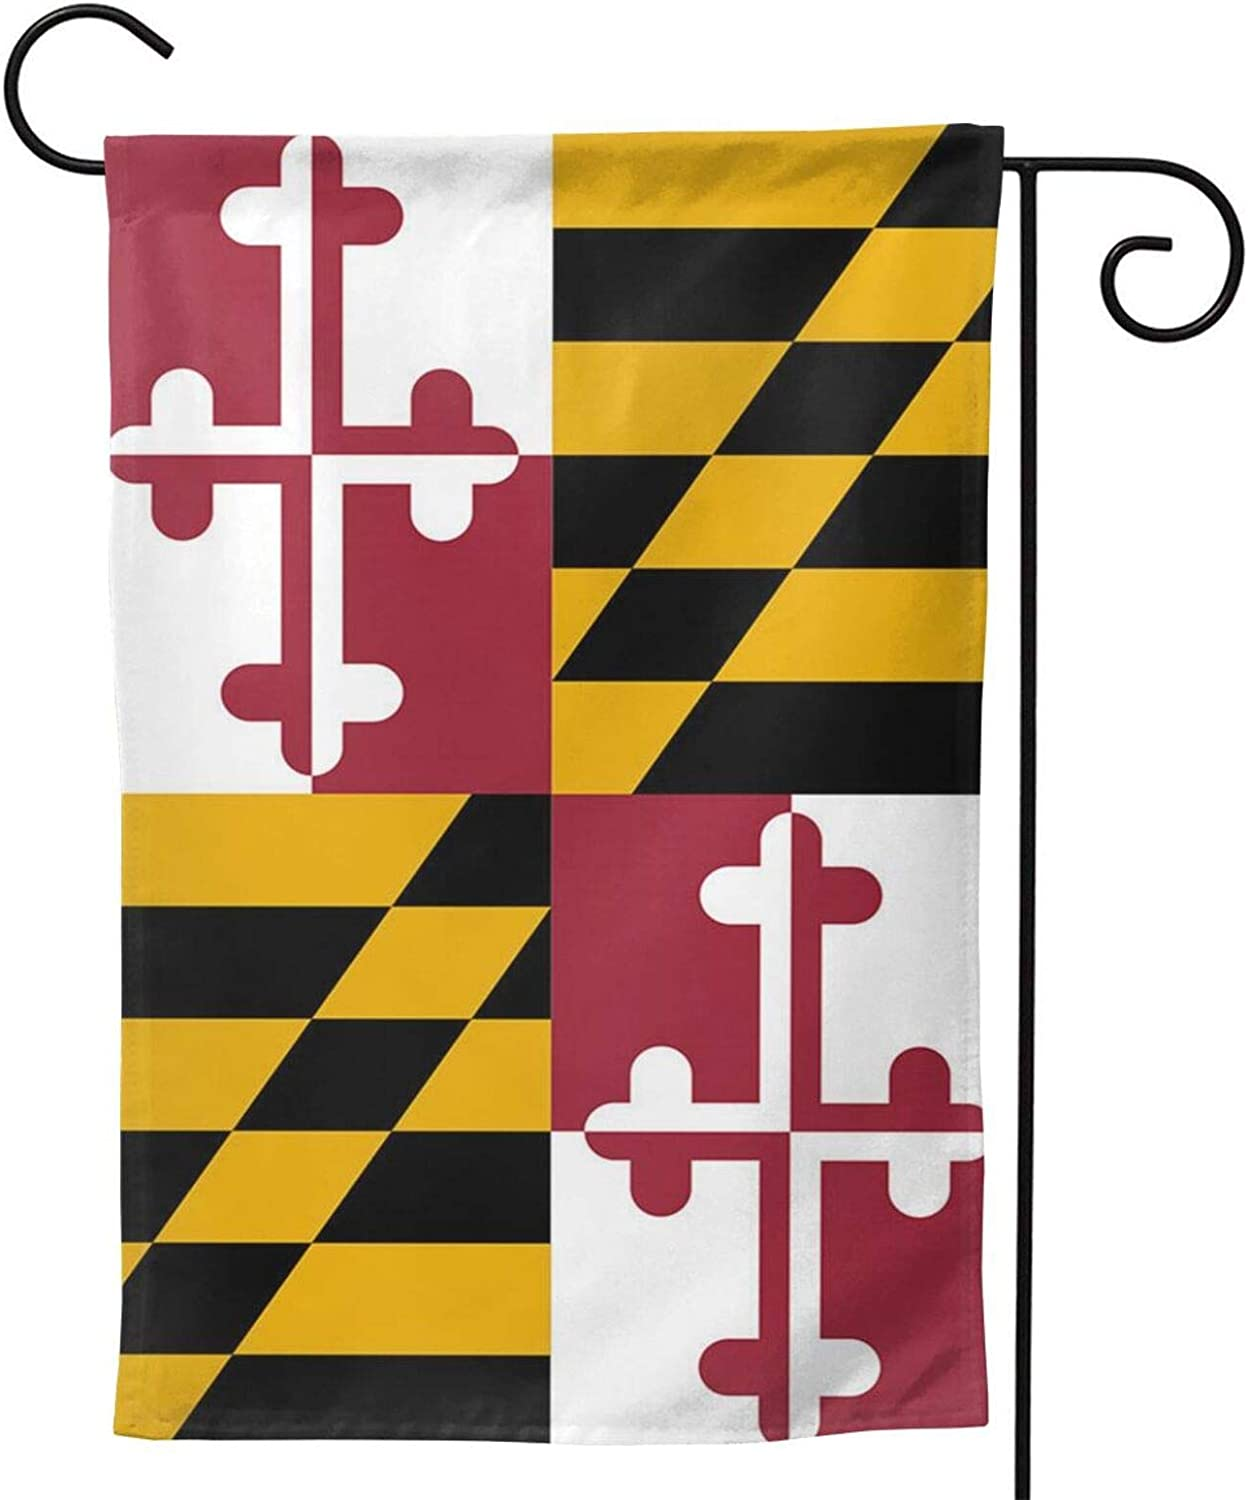 ainidamiss Maryland Md Double Sided Garden Flag, Premium Material, Outdoor Decorative Small Flags for Home House Garden Yard Lawn Patio, 12.5 x 18.5 inc